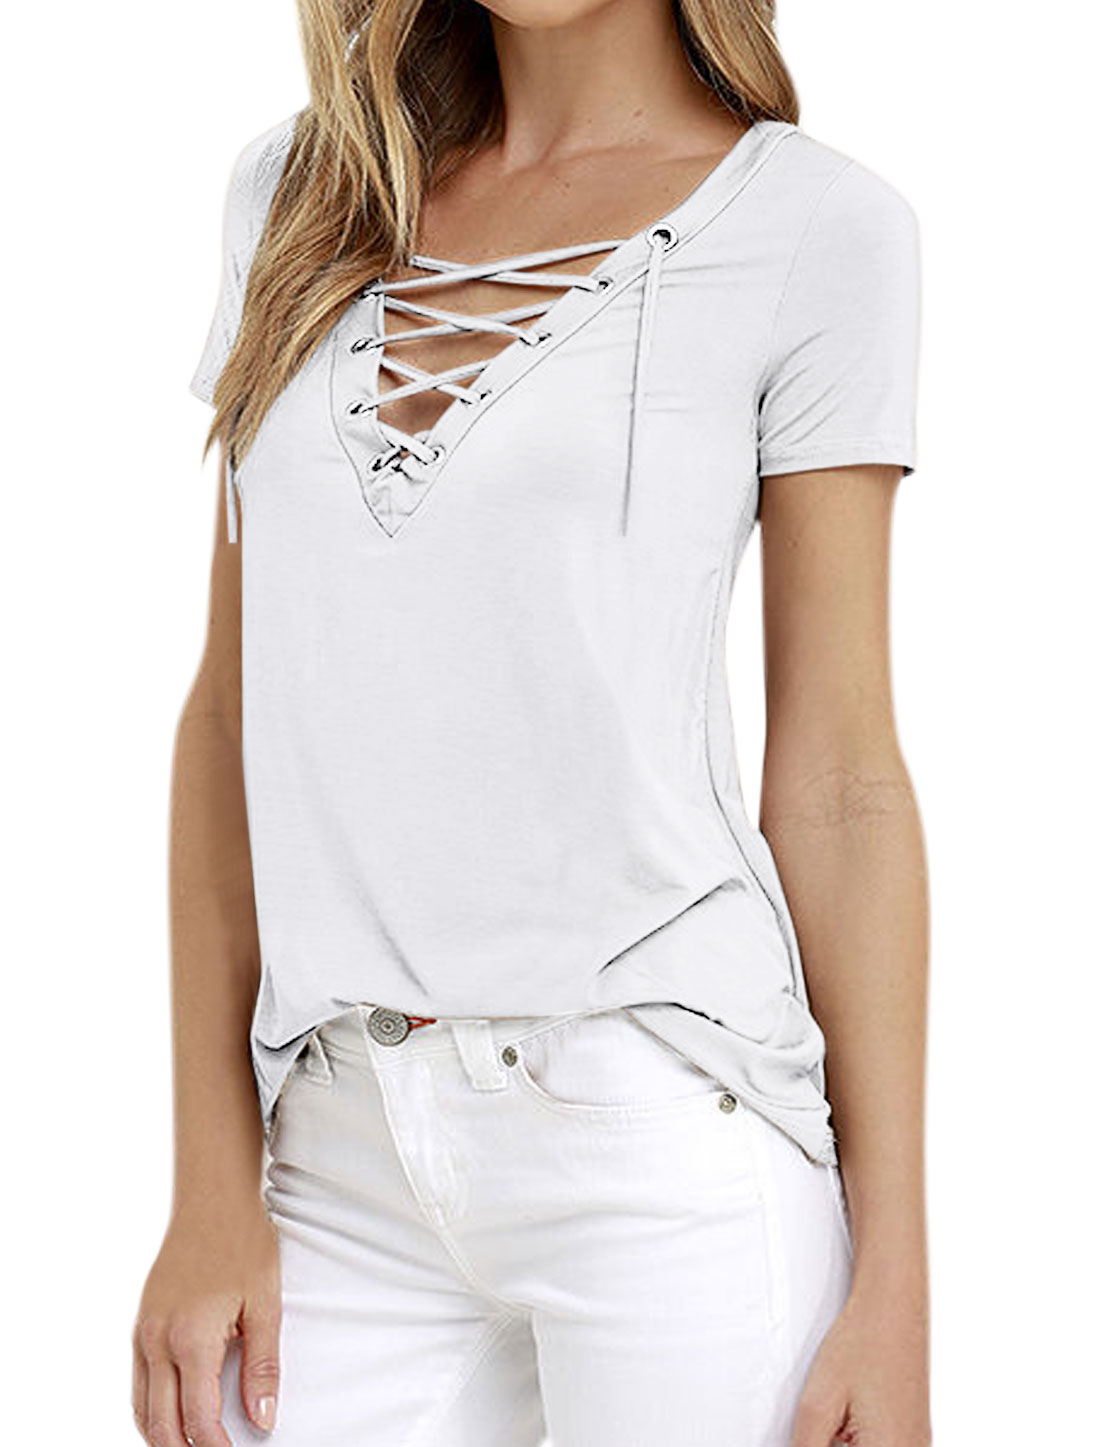 Women Eyelet Design Lace Up Front V Neck Stretchy Tee Shirt White M